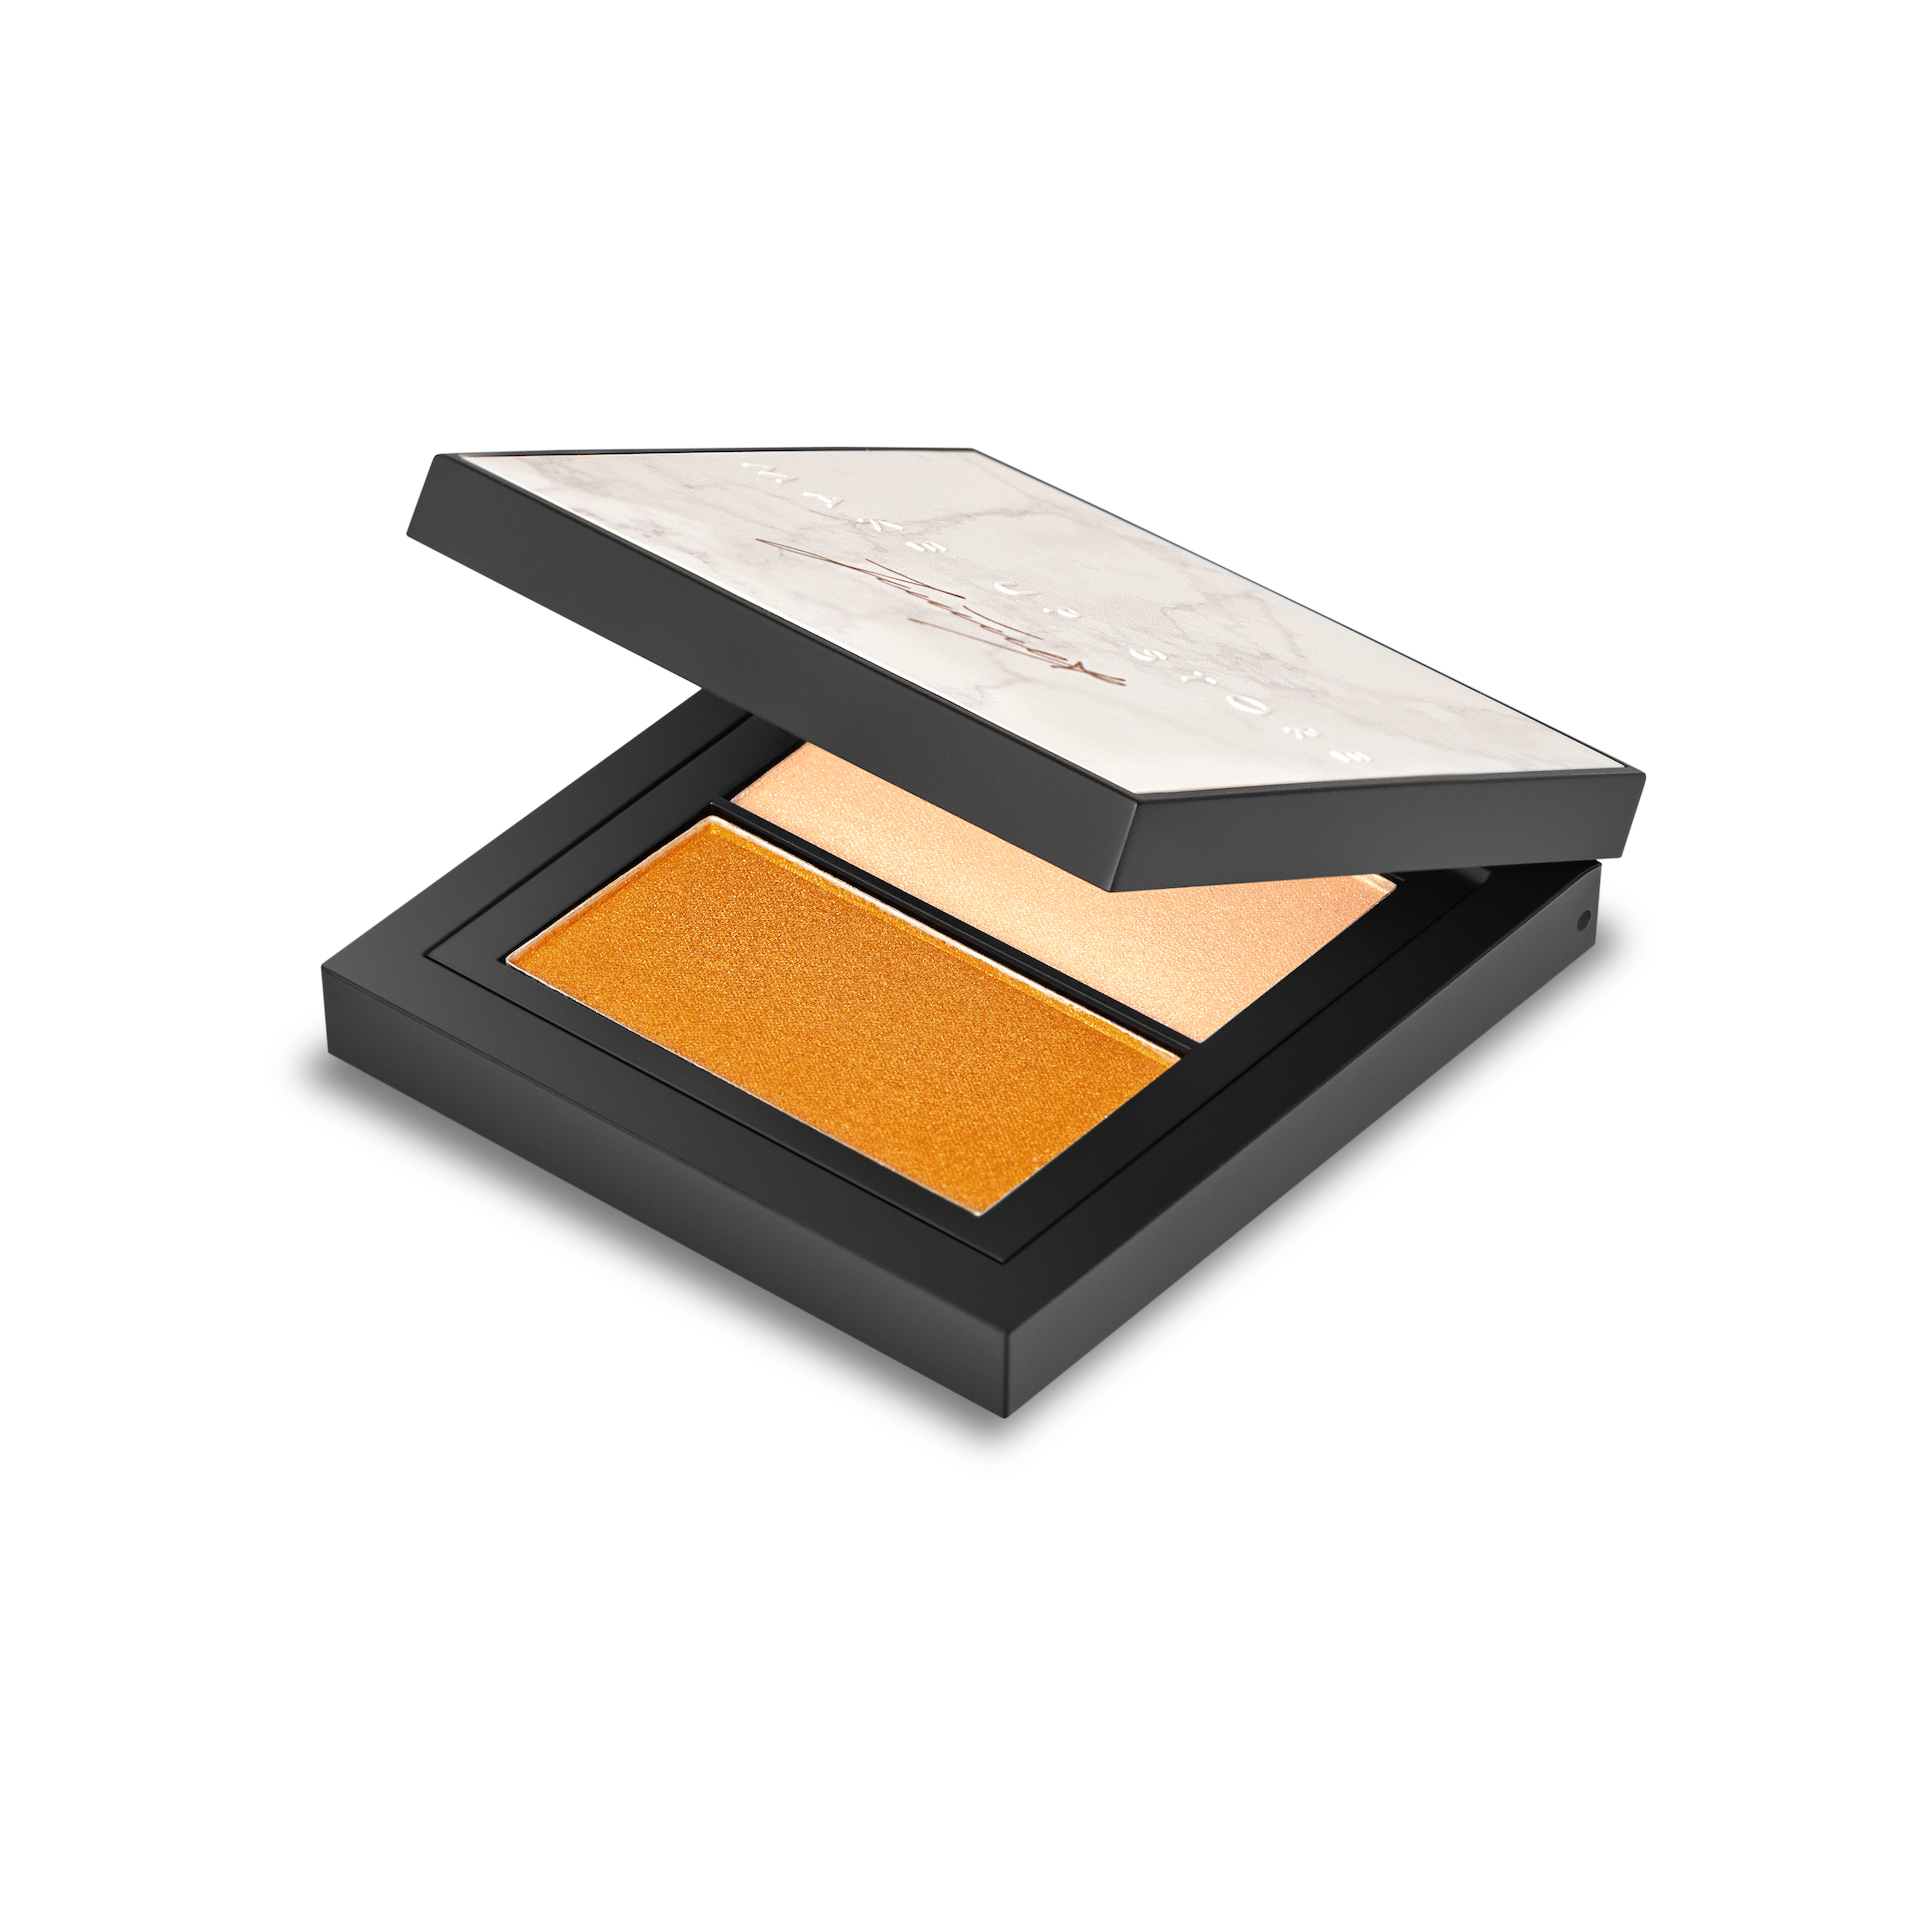 North Star Duo MUS North Star Duo Highlighter:14 g / 0,